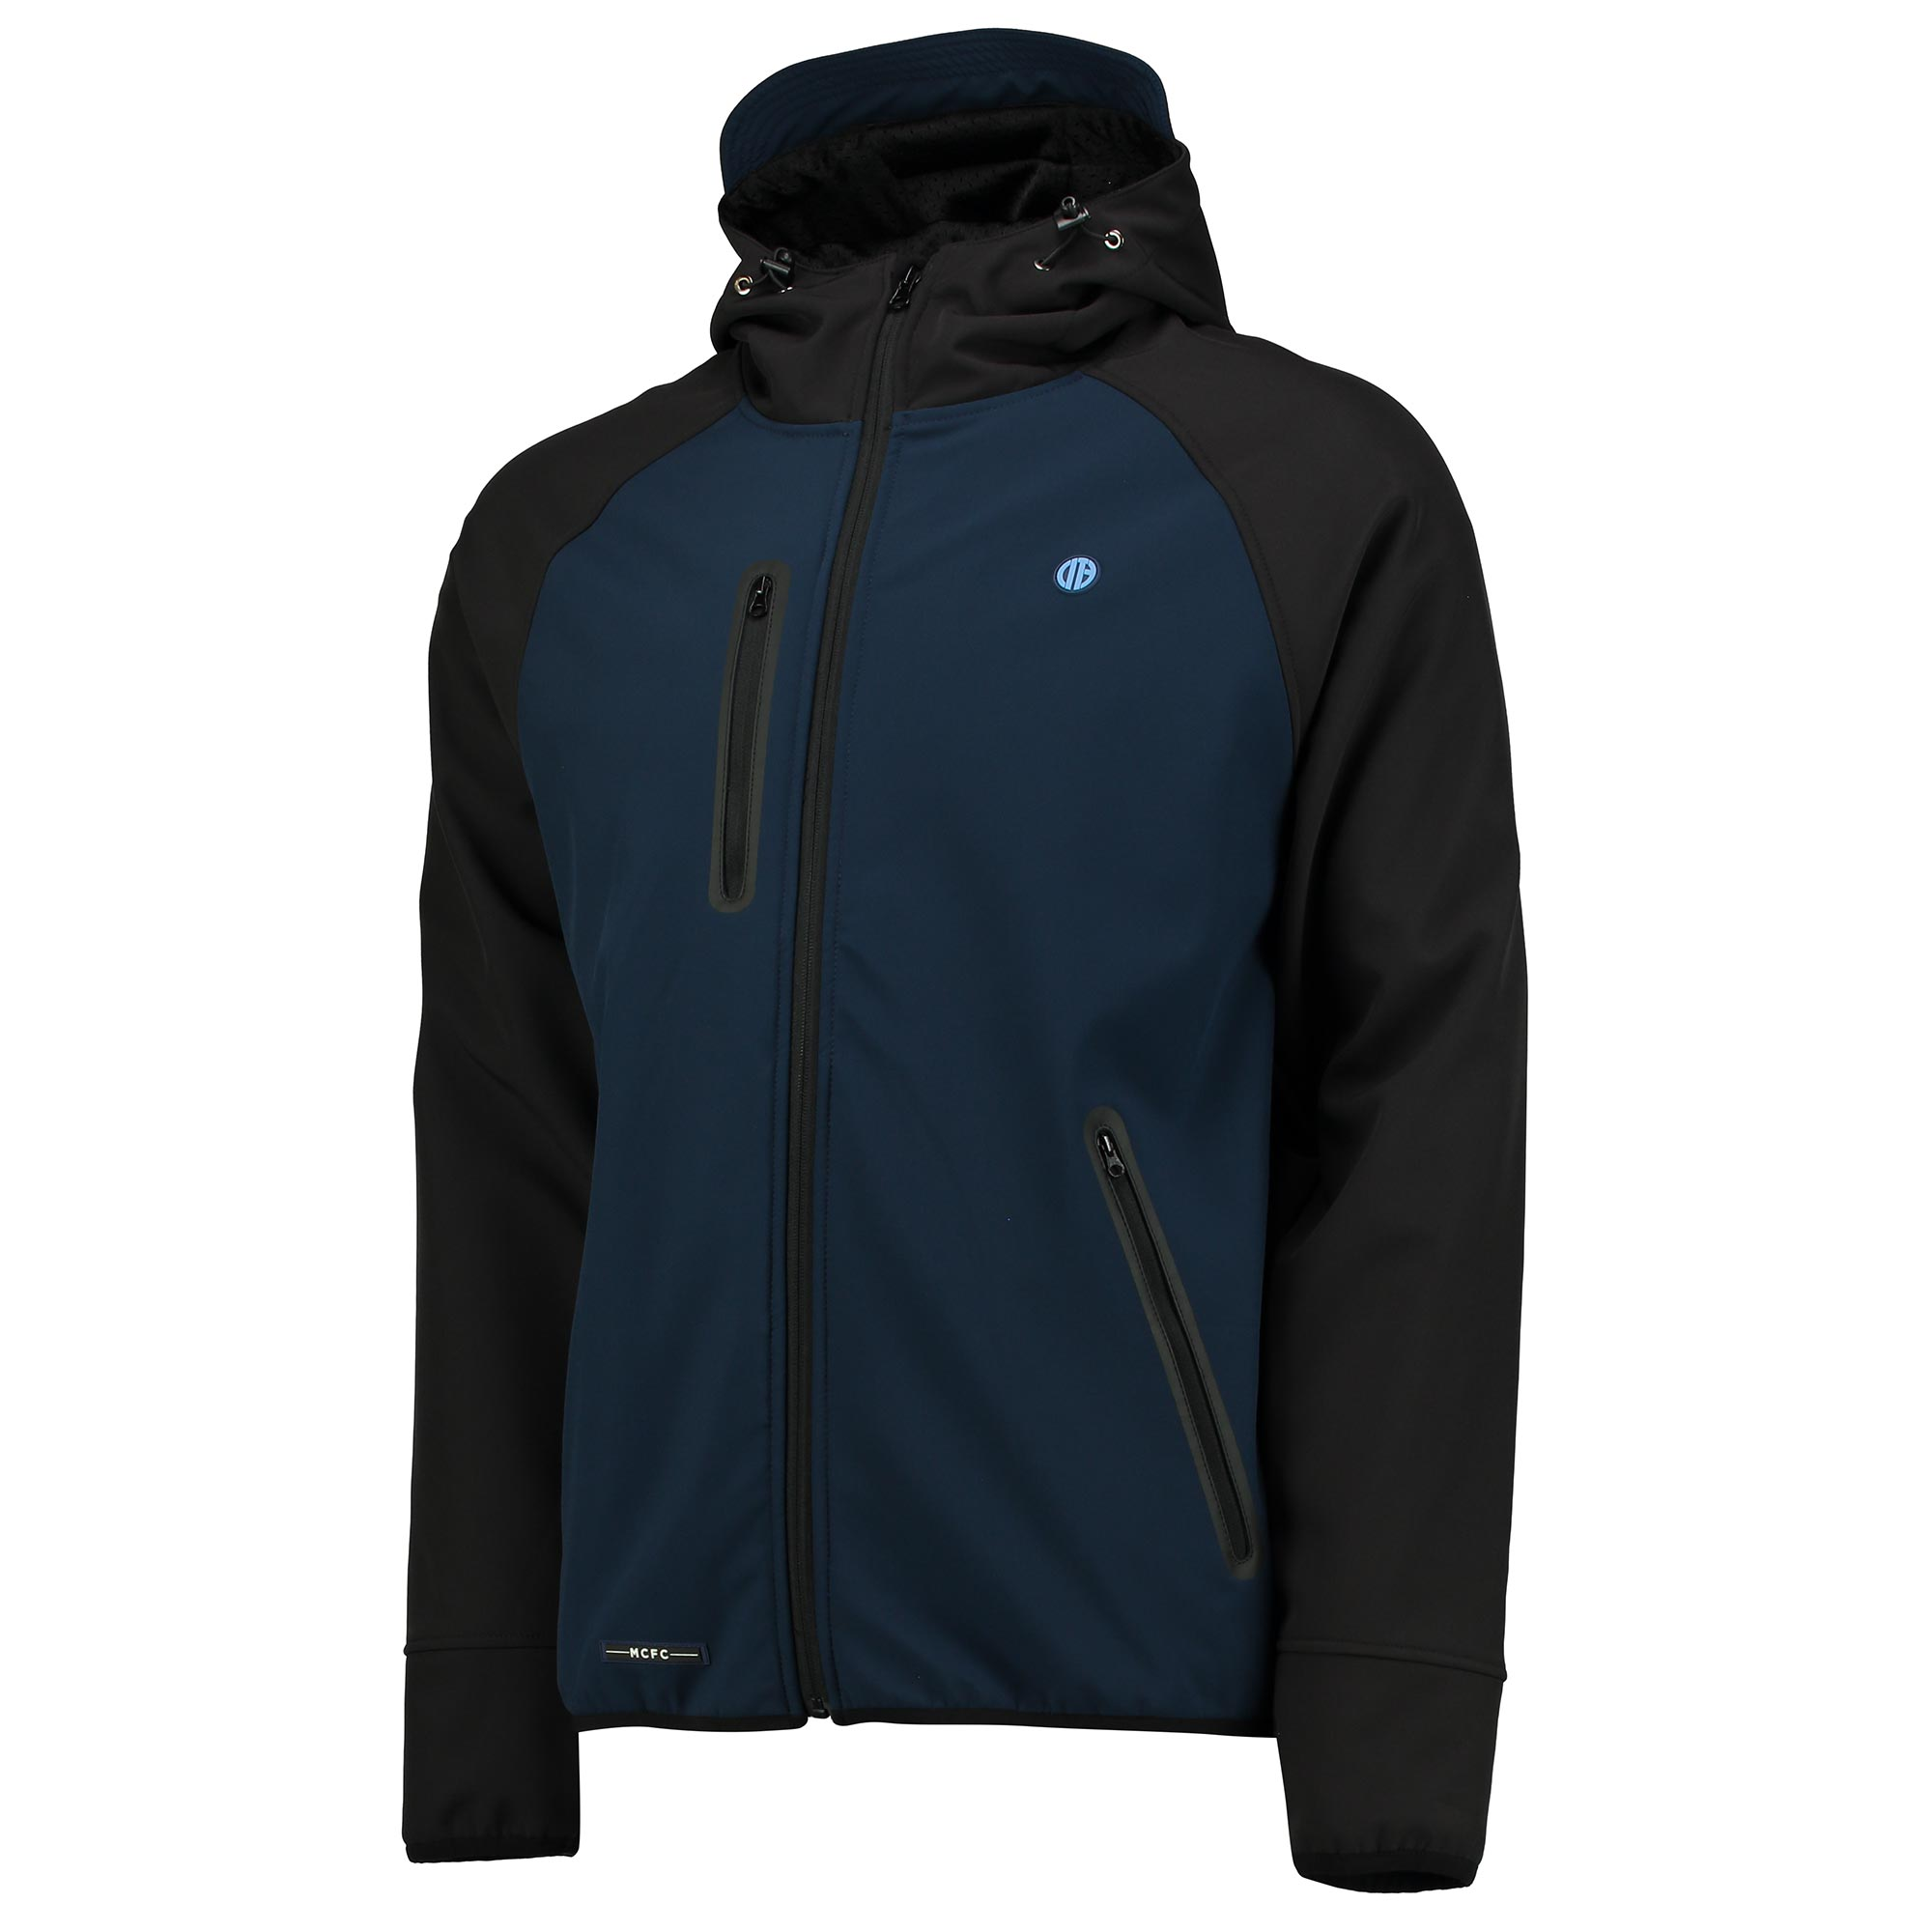 Manchester City Terrace Softshell Jacket - Navy/Charcoal